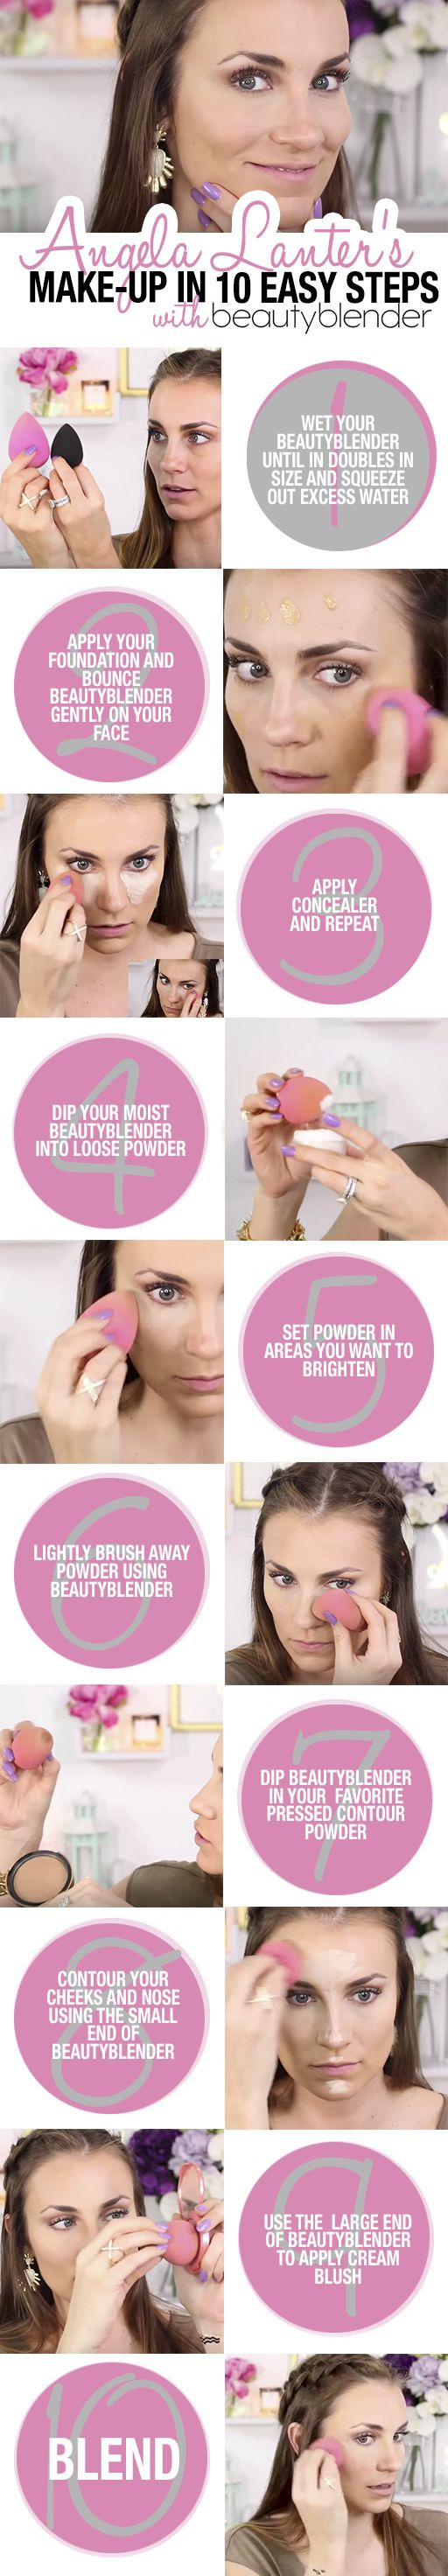 Angela Lanter Uses A Single Beautyblender To Do An Entire Beautiful Make Up Look Face Makeup Tutorial Beauty Blender Contour Makeup